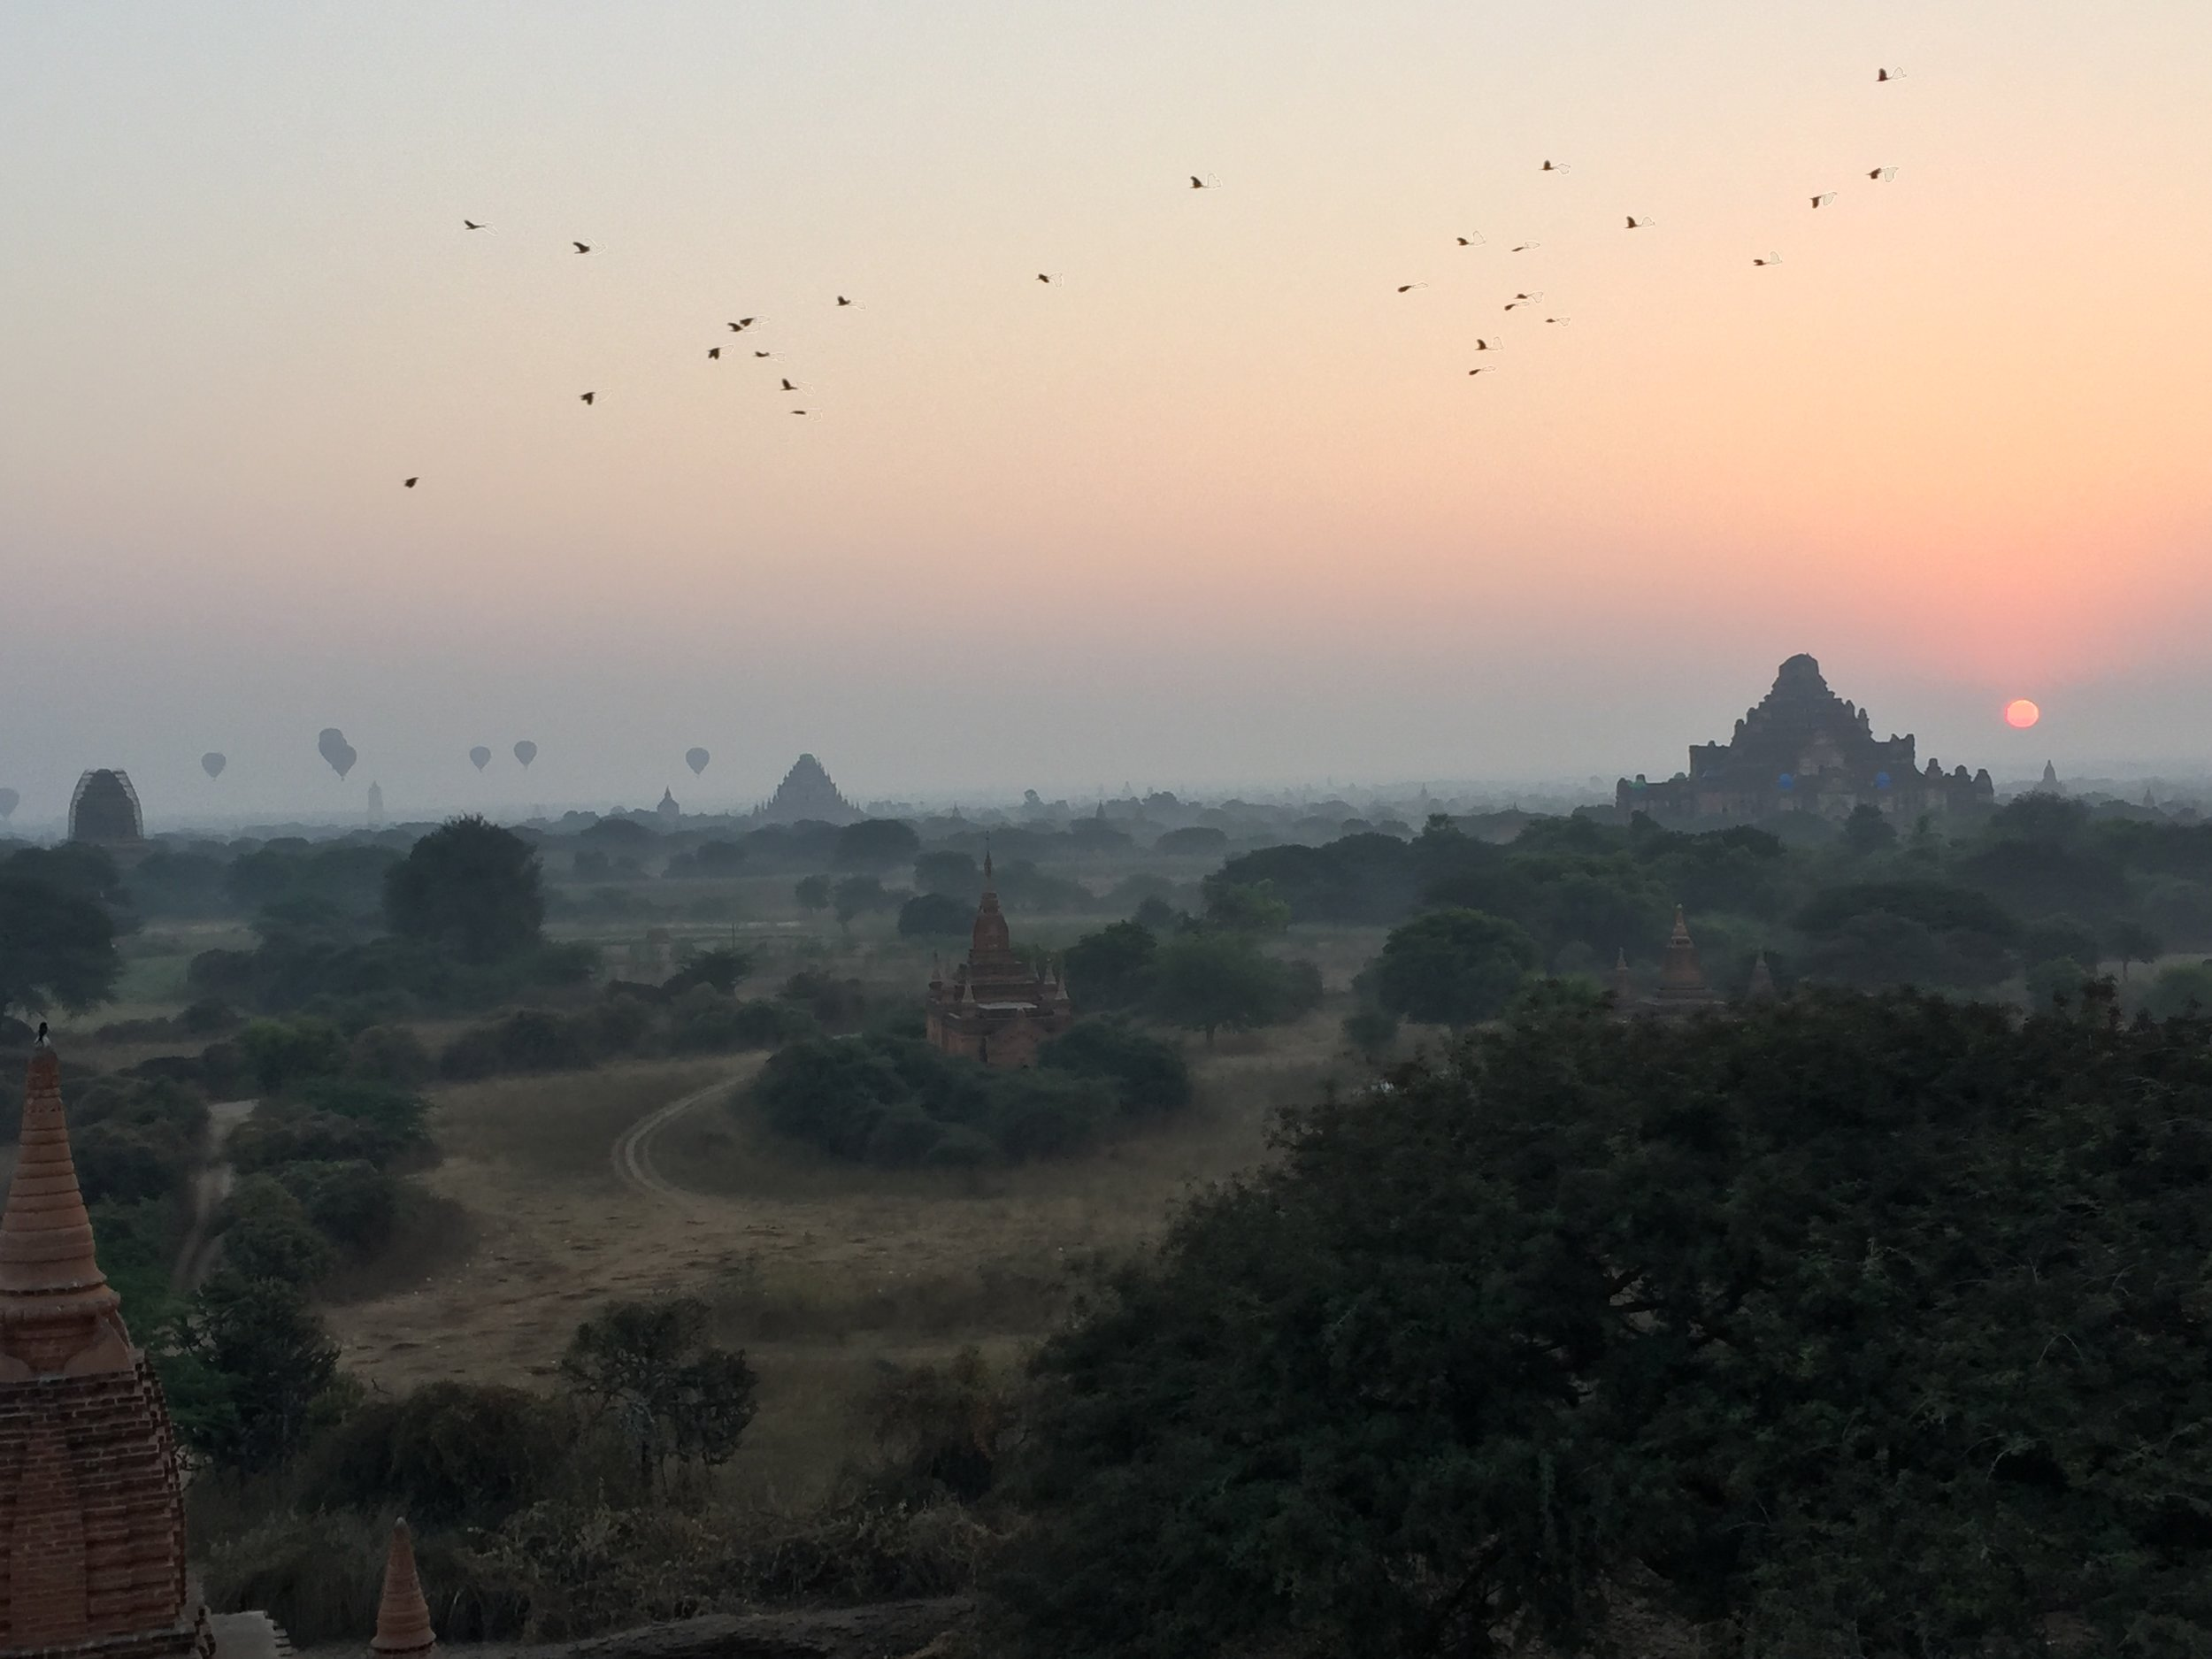 Birds fly by the hot air balloon sunrise over Bagan.